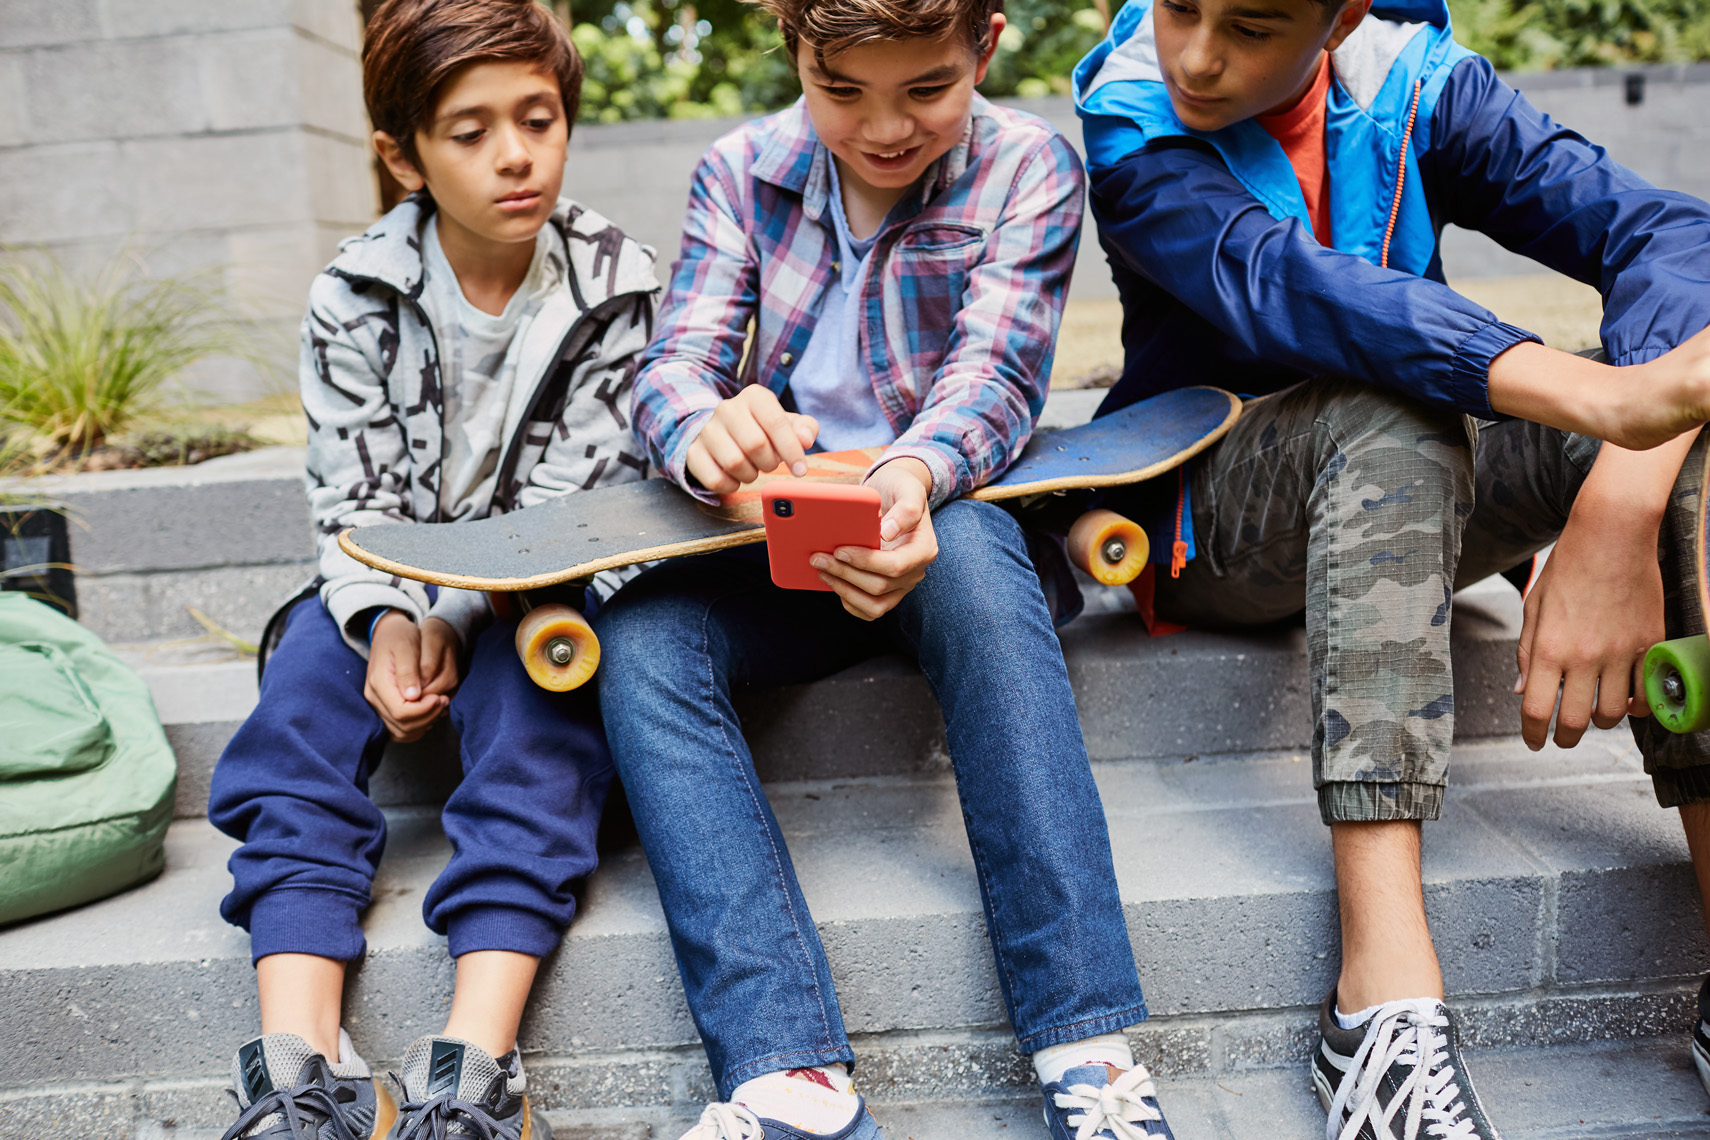 Skateboarders pause to look at a video. Image from lifestyle shoot by Leah Verwey